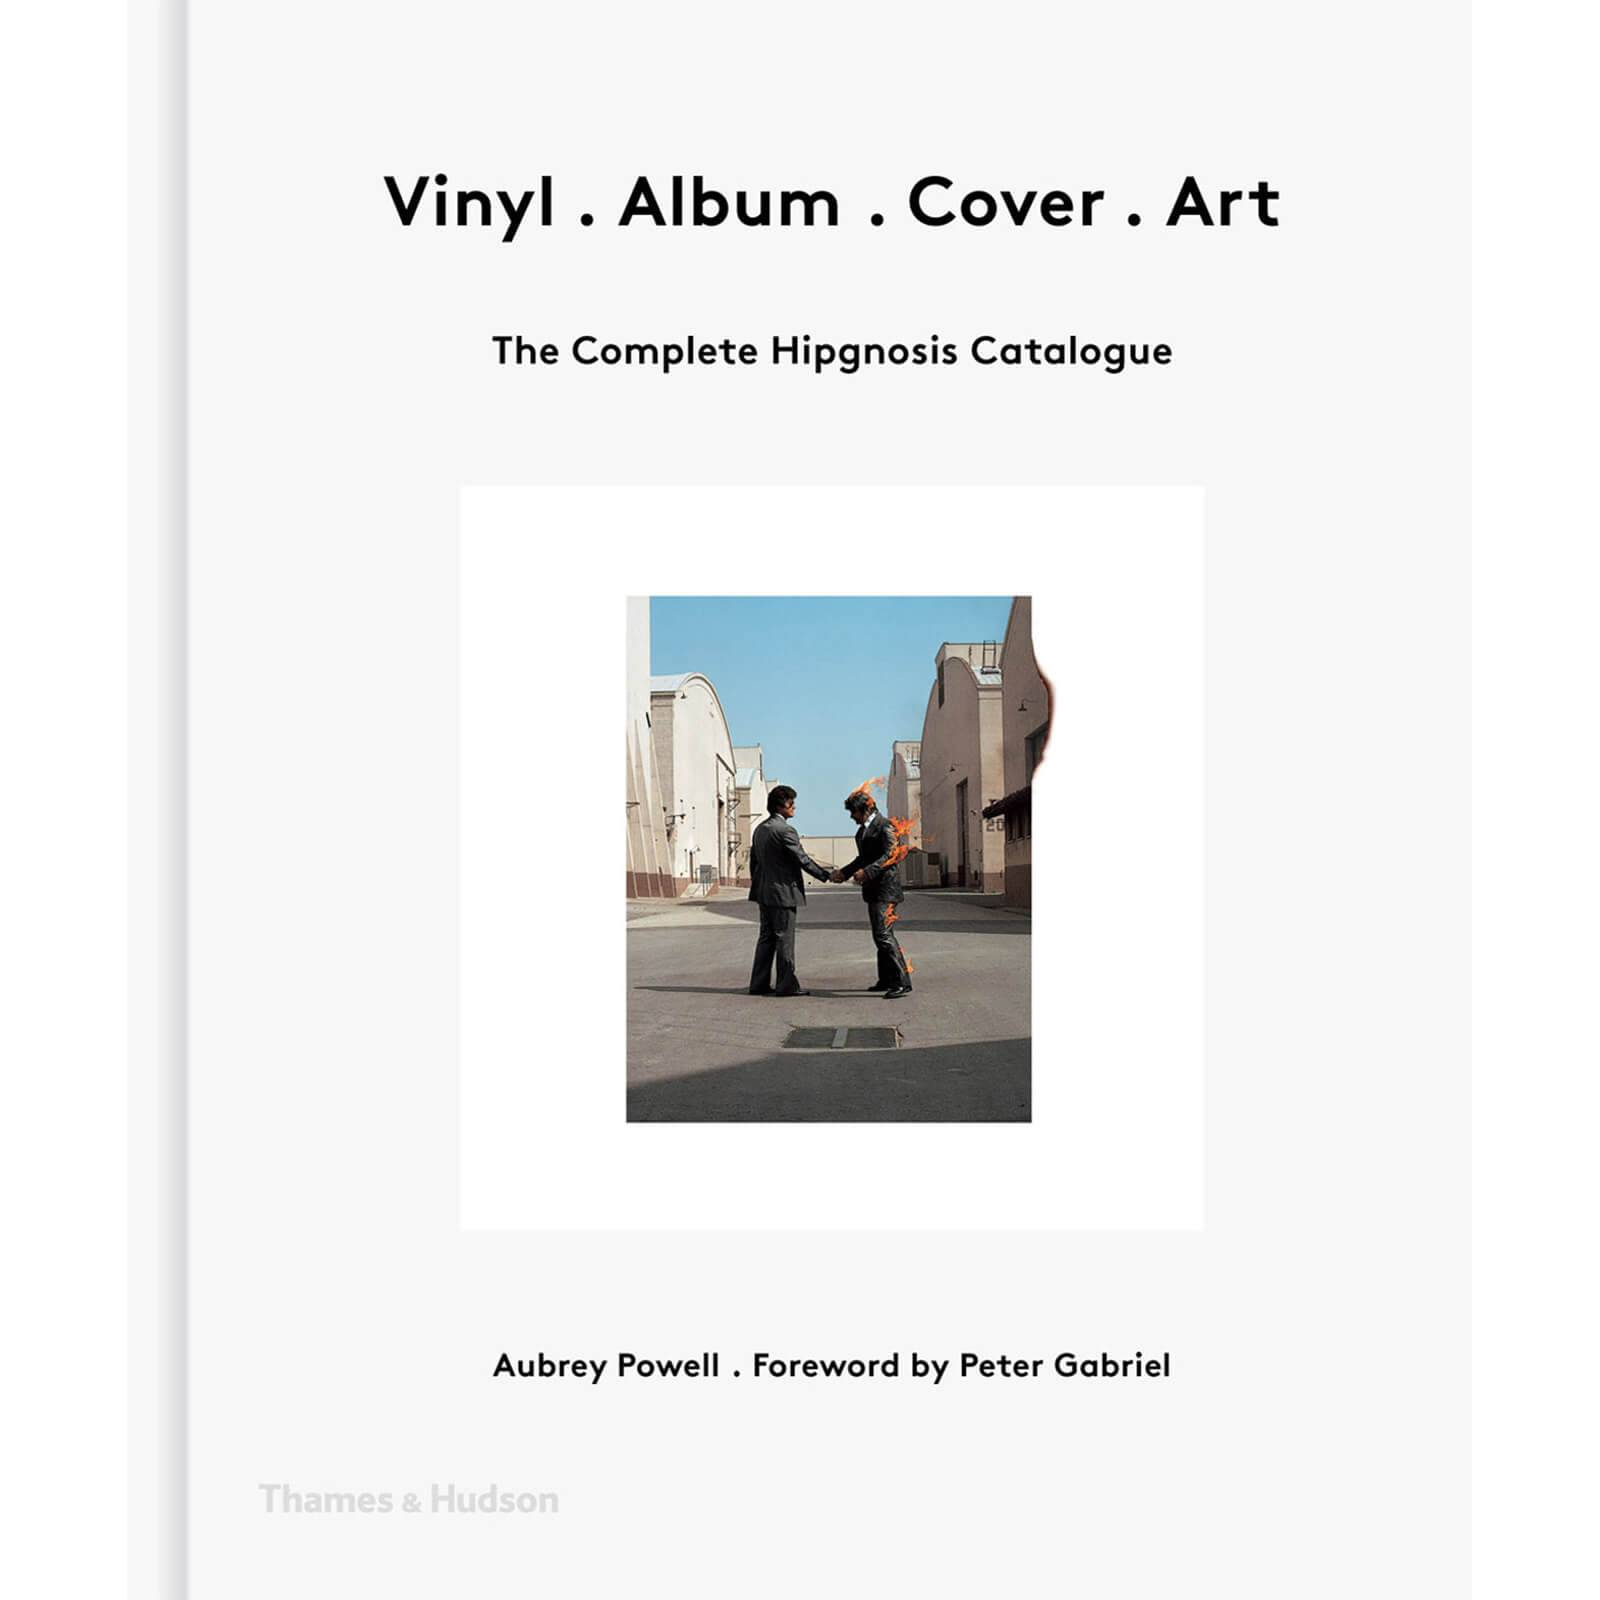 Thames and Hudson Ltd: Vinyl. Album. Cover. Art - The Complete Hipgnosis Catalogue